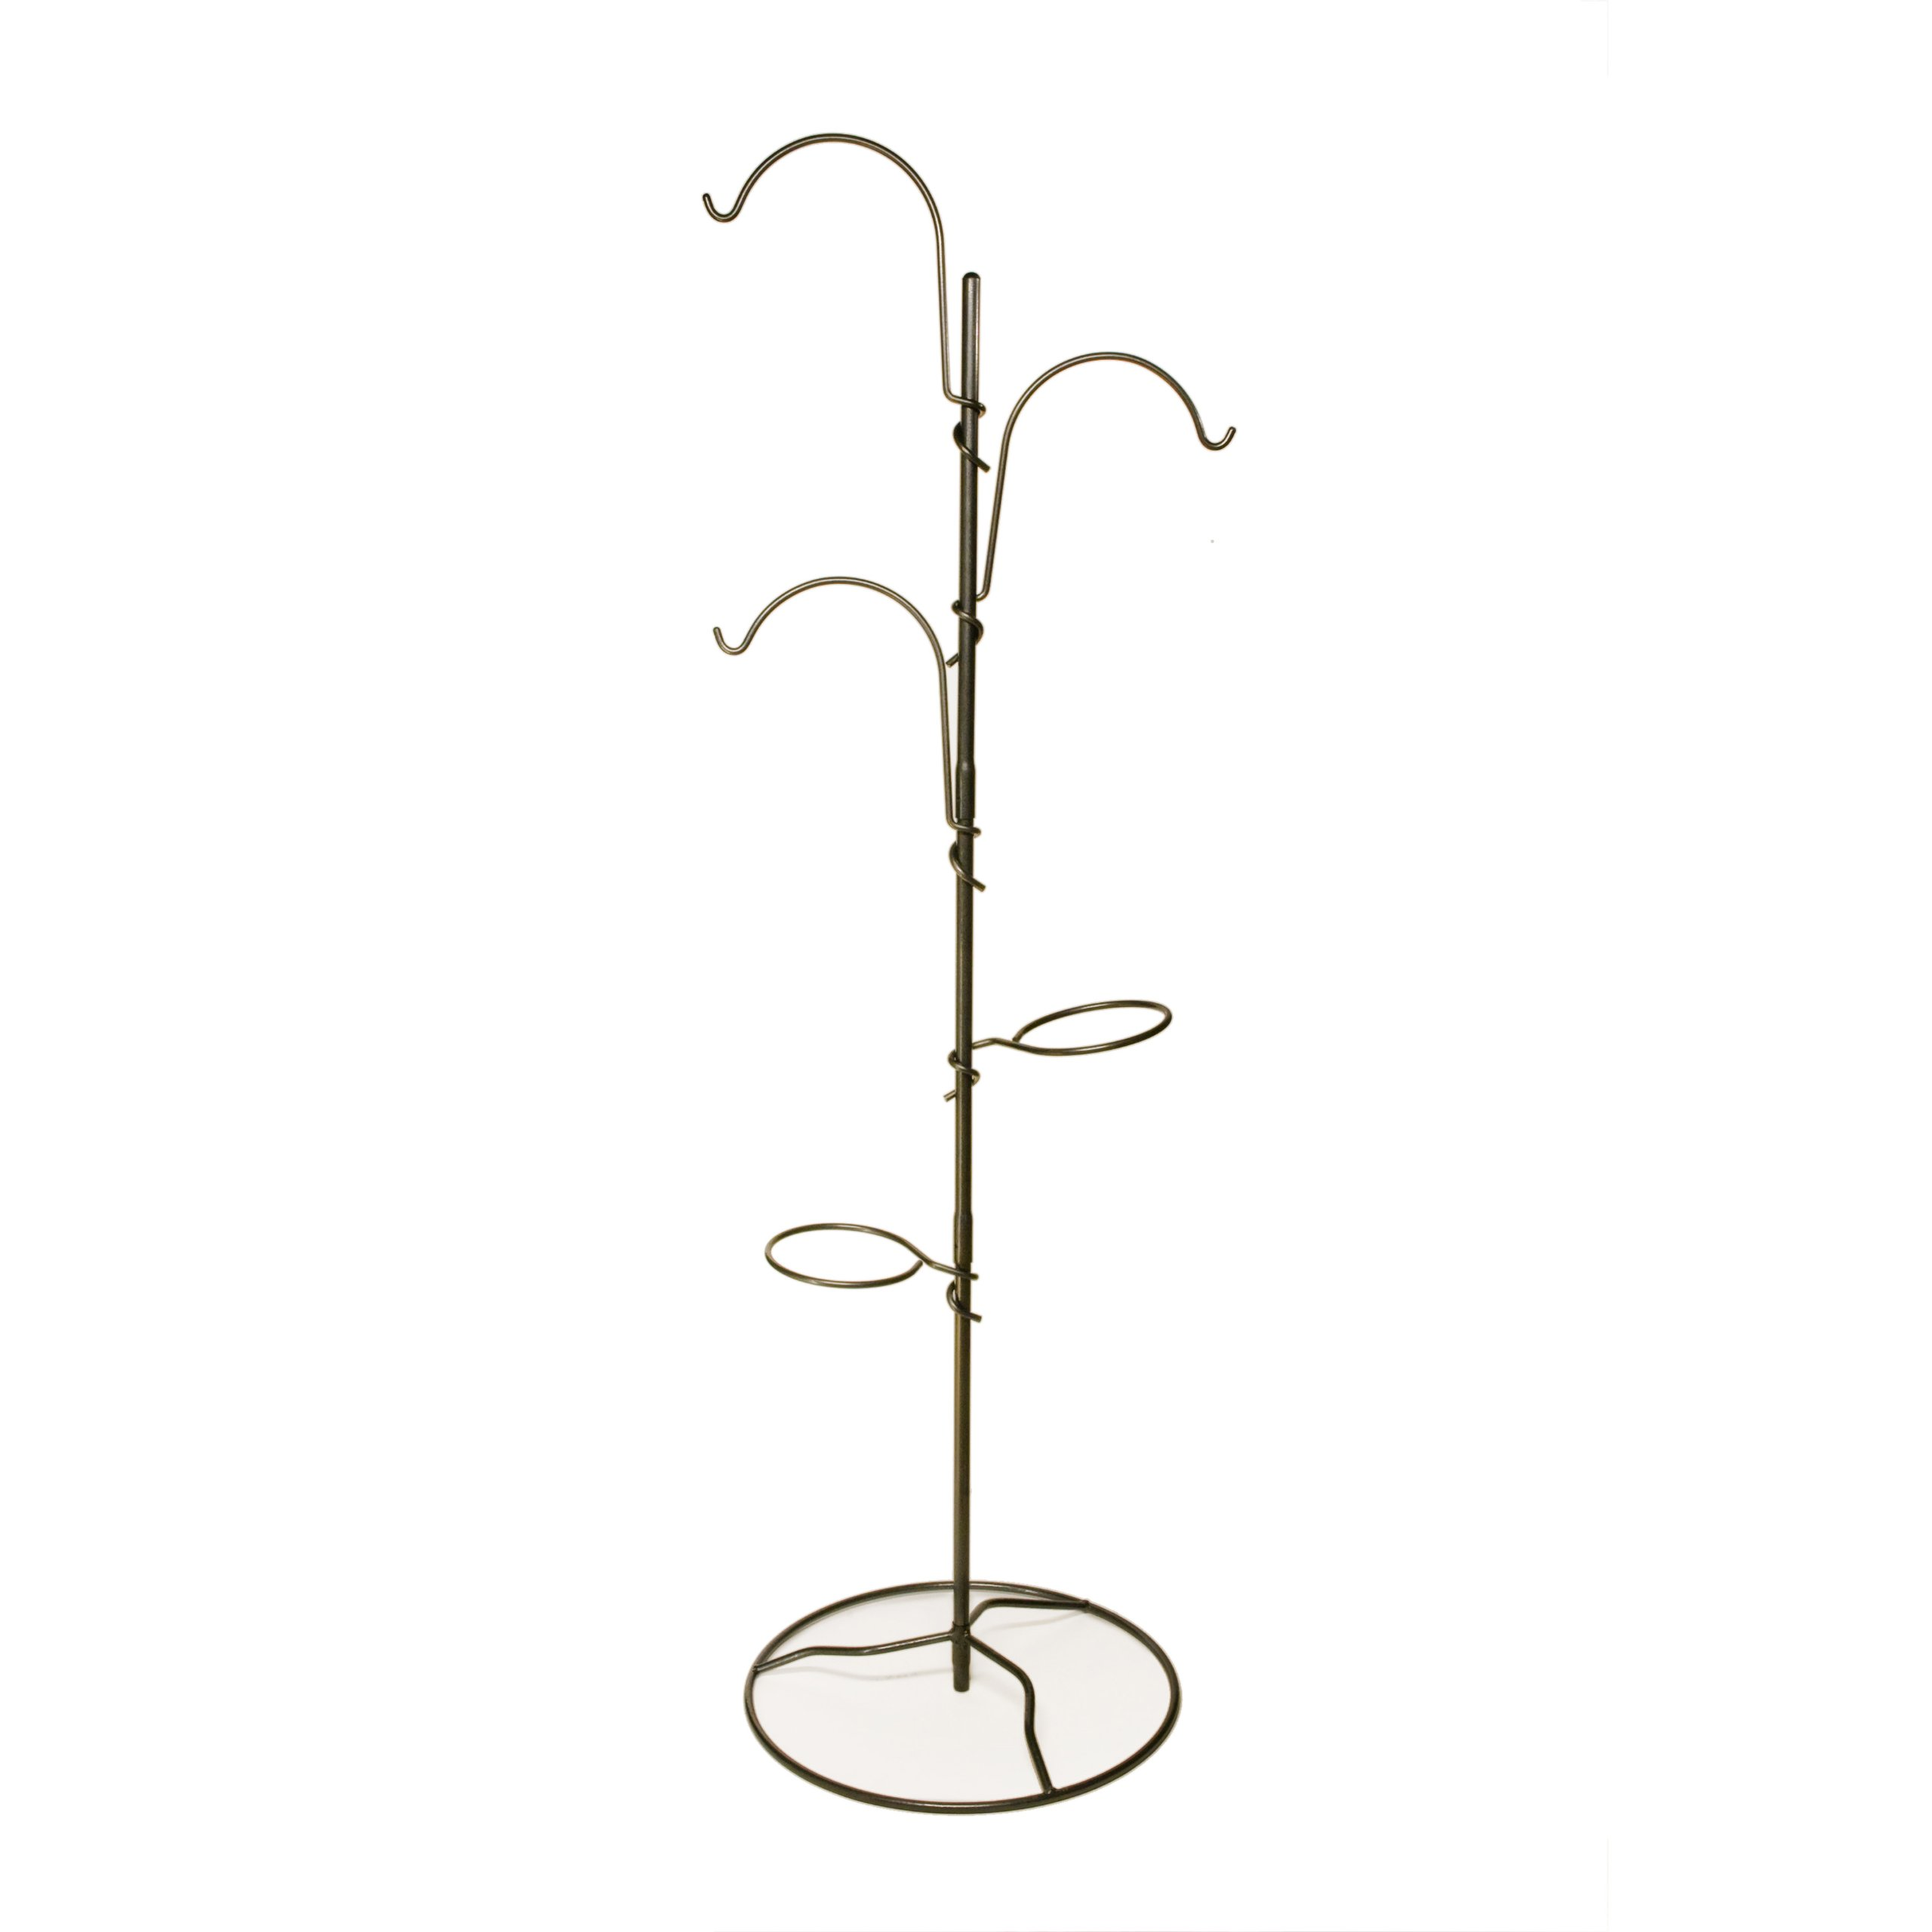 Yard Butler Yard Tree All Steel Indoor Outdoor Free Standing Adjustable Hanging Garden System & Plant Stand – YT-5 by Yard Butler